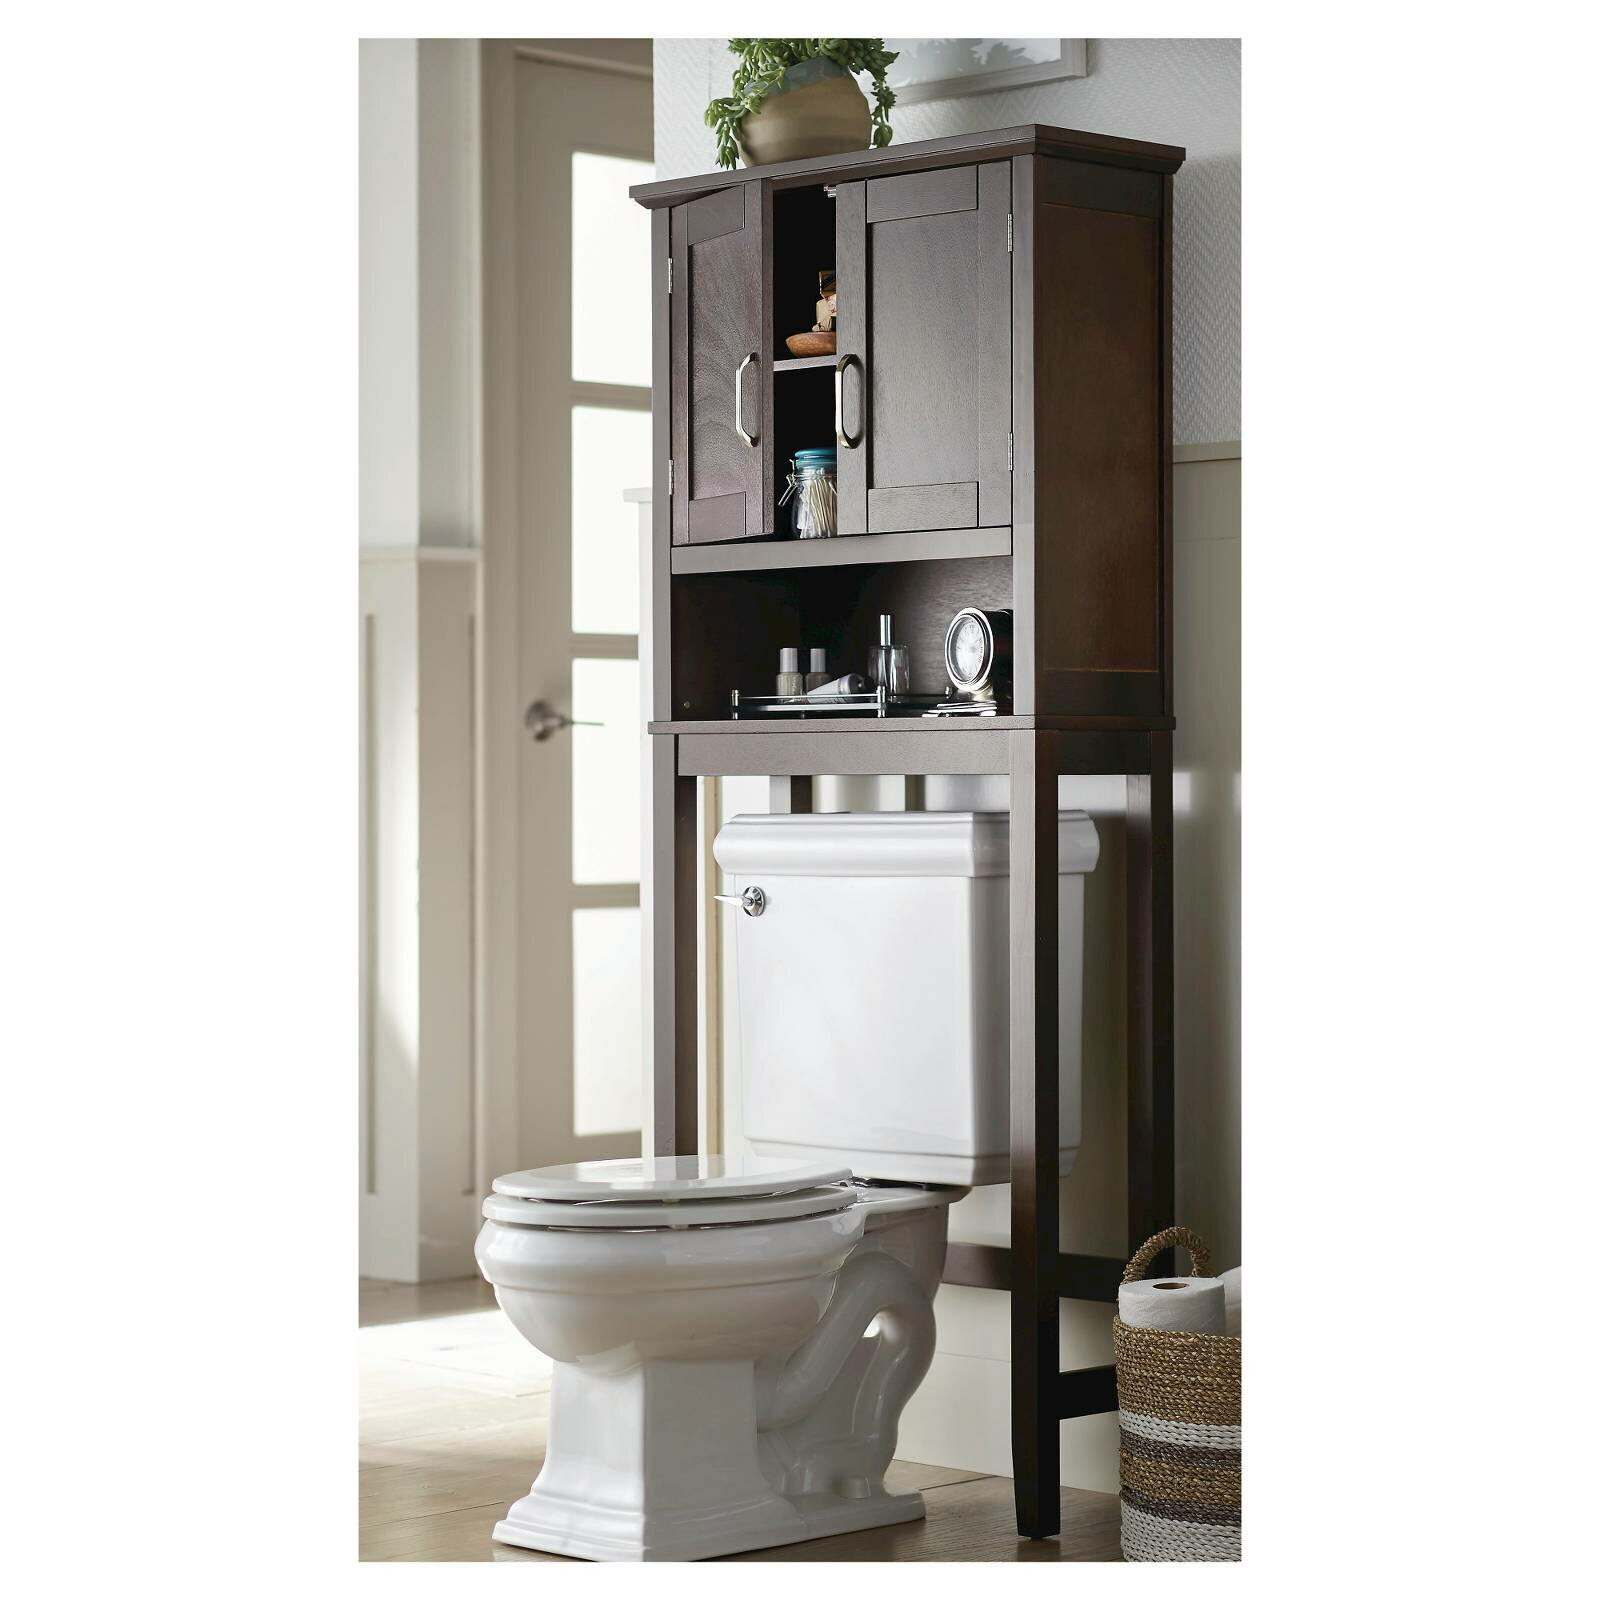 Bathroom Bathroom Storage Cabinets Over Toilet Over The